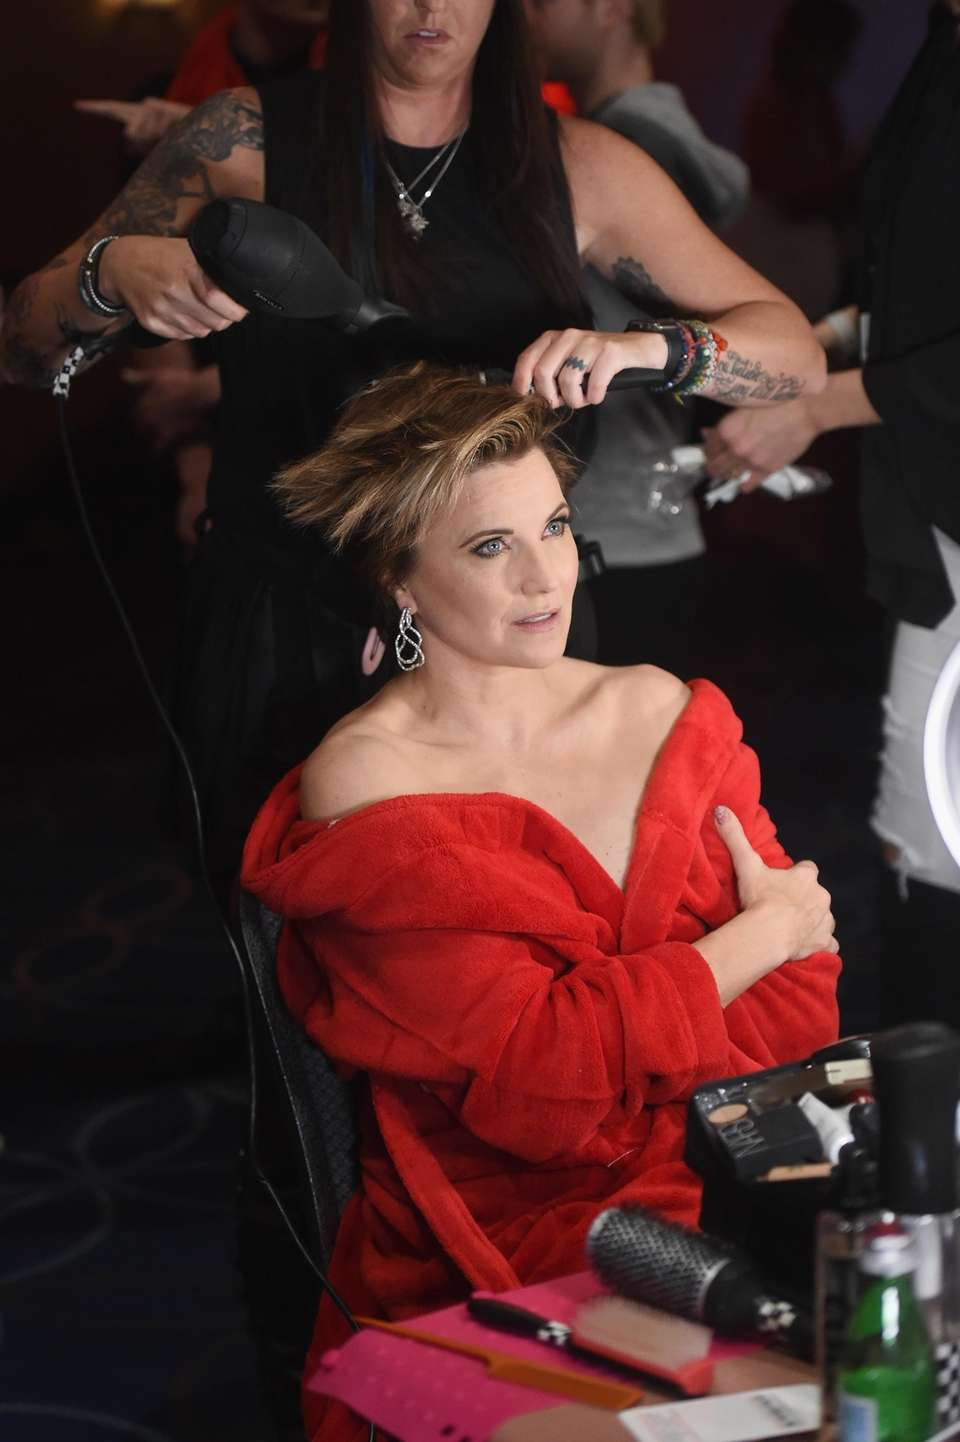 Lucy Lawless prepares backstage at the American Heart